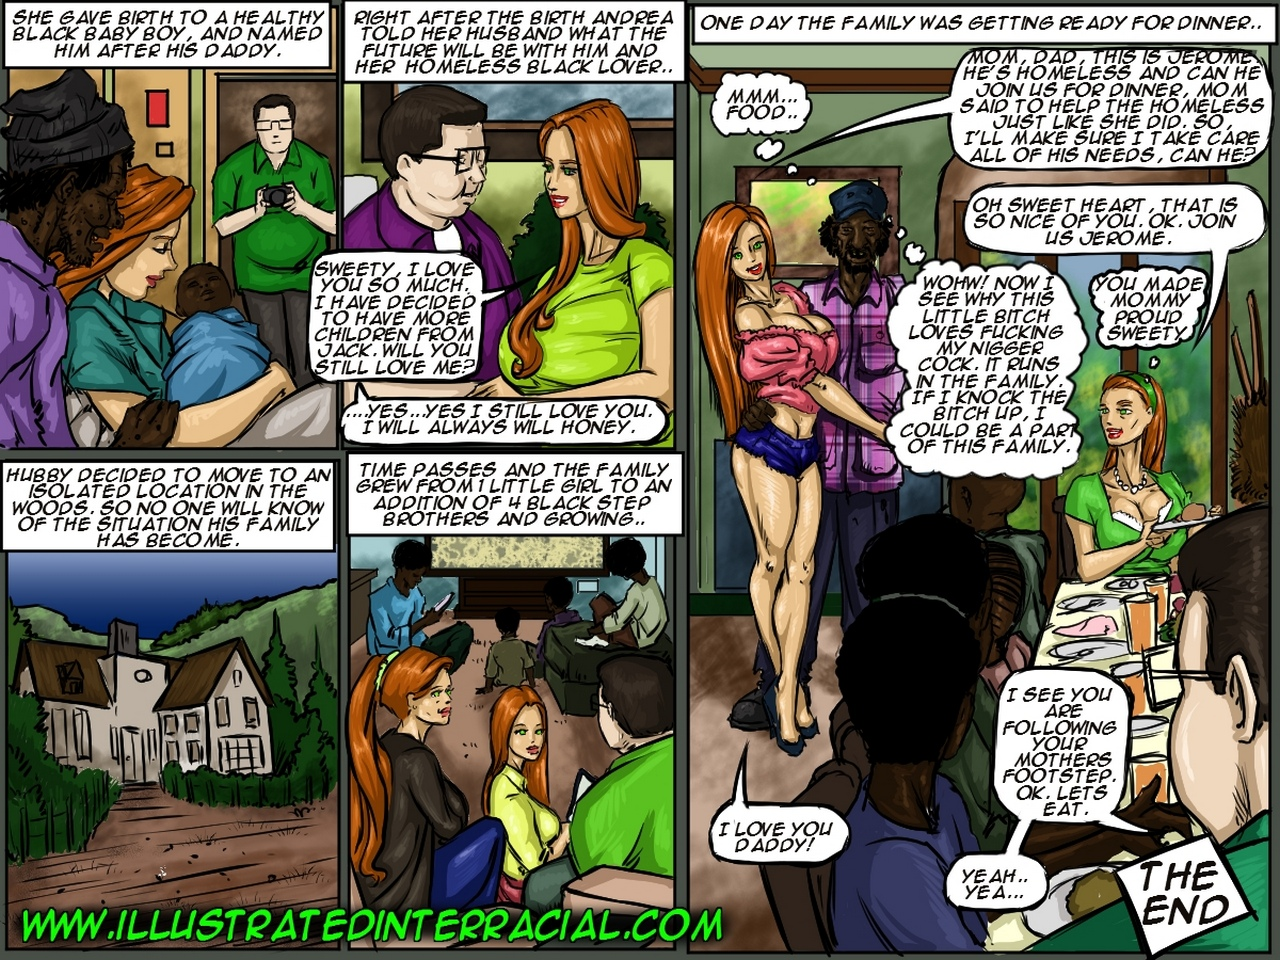 Most Popular, Black & Interracial, Cheating, Milf, Gangbang, Urination, Pregnant & Impregnation, Group: IllustratedInterracial, Emptiness comic porn